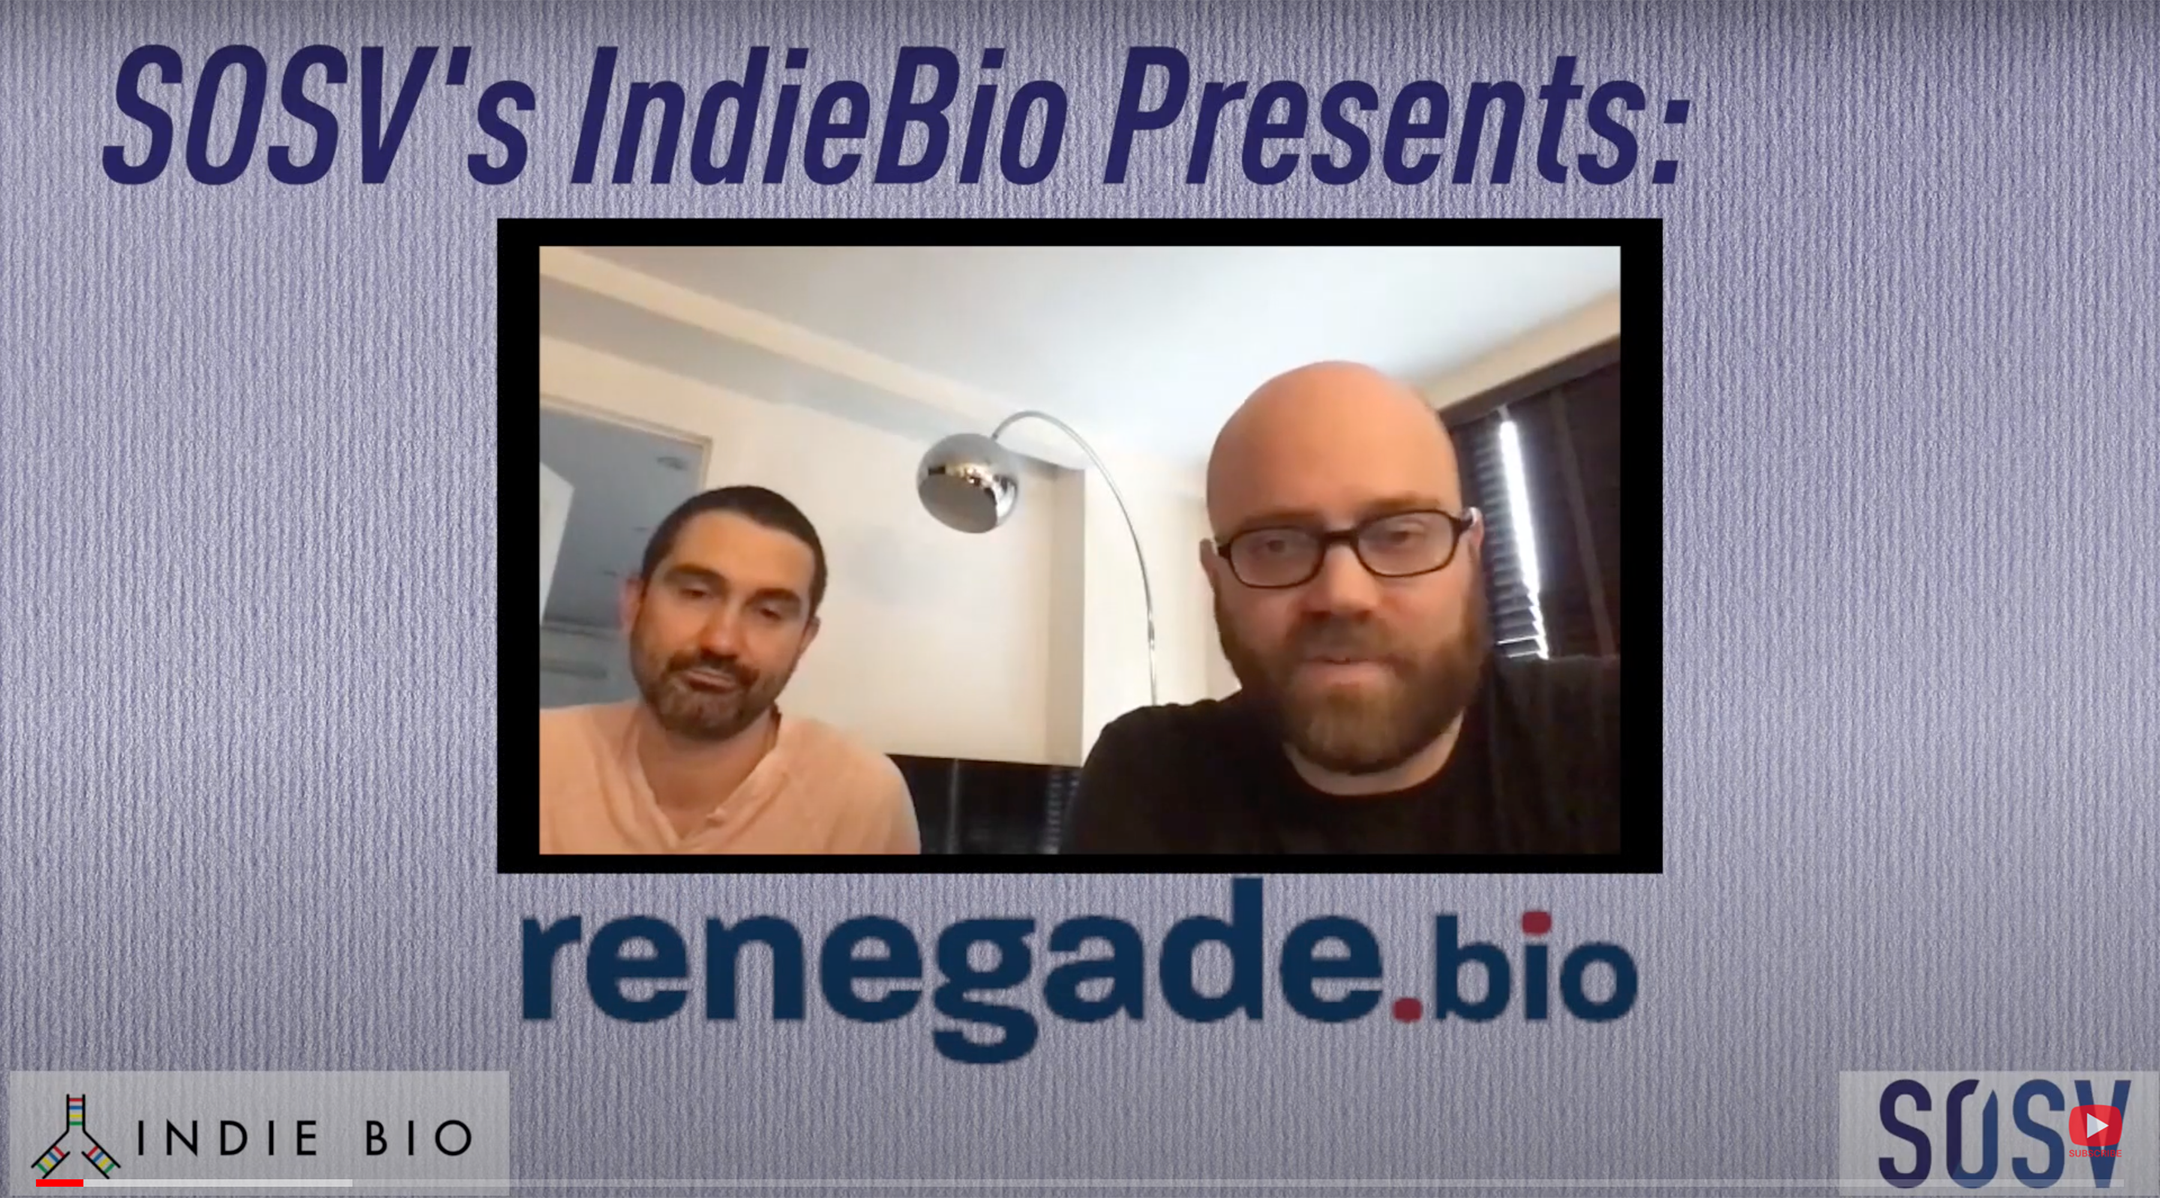 renegade.bio Cofounders Talk with SOSV & IndieBio